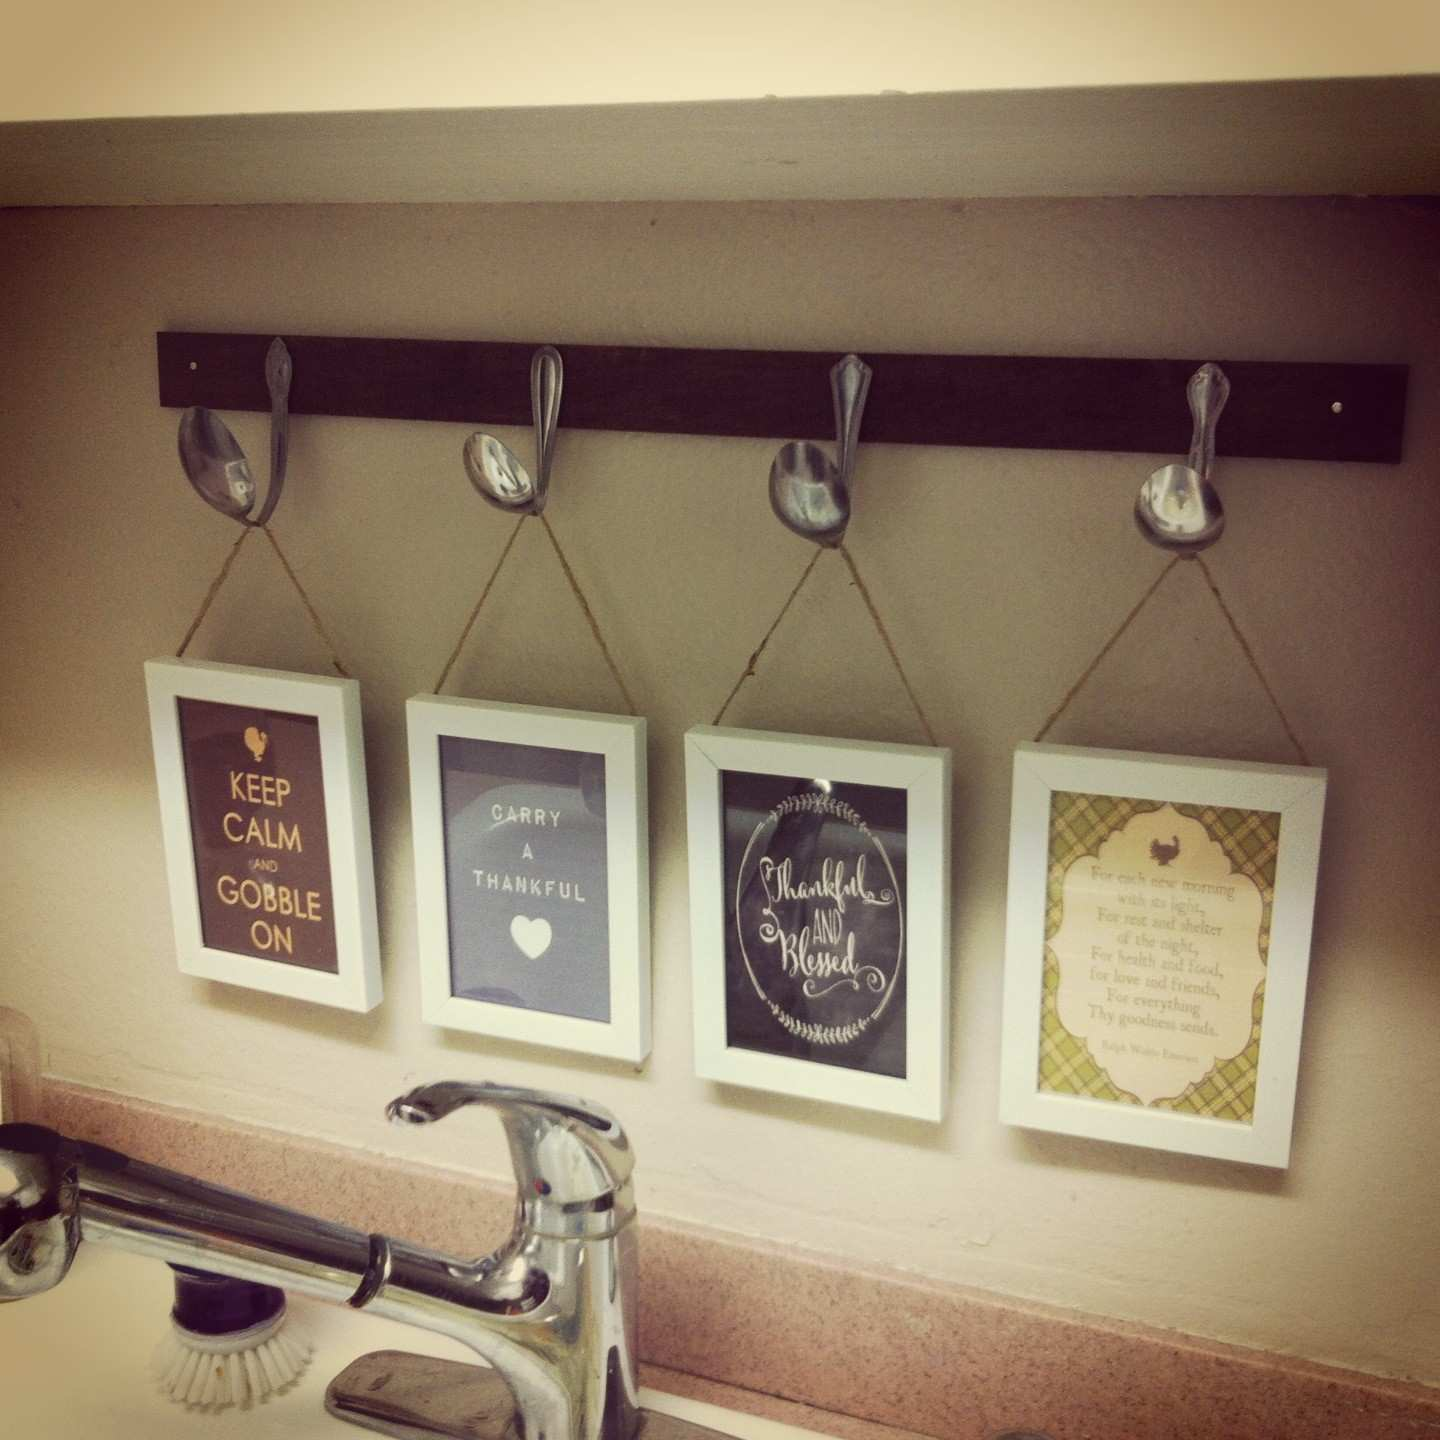 Wall Art Ideas For Bedroom Country Kitchen Wall Kitchen Shelf